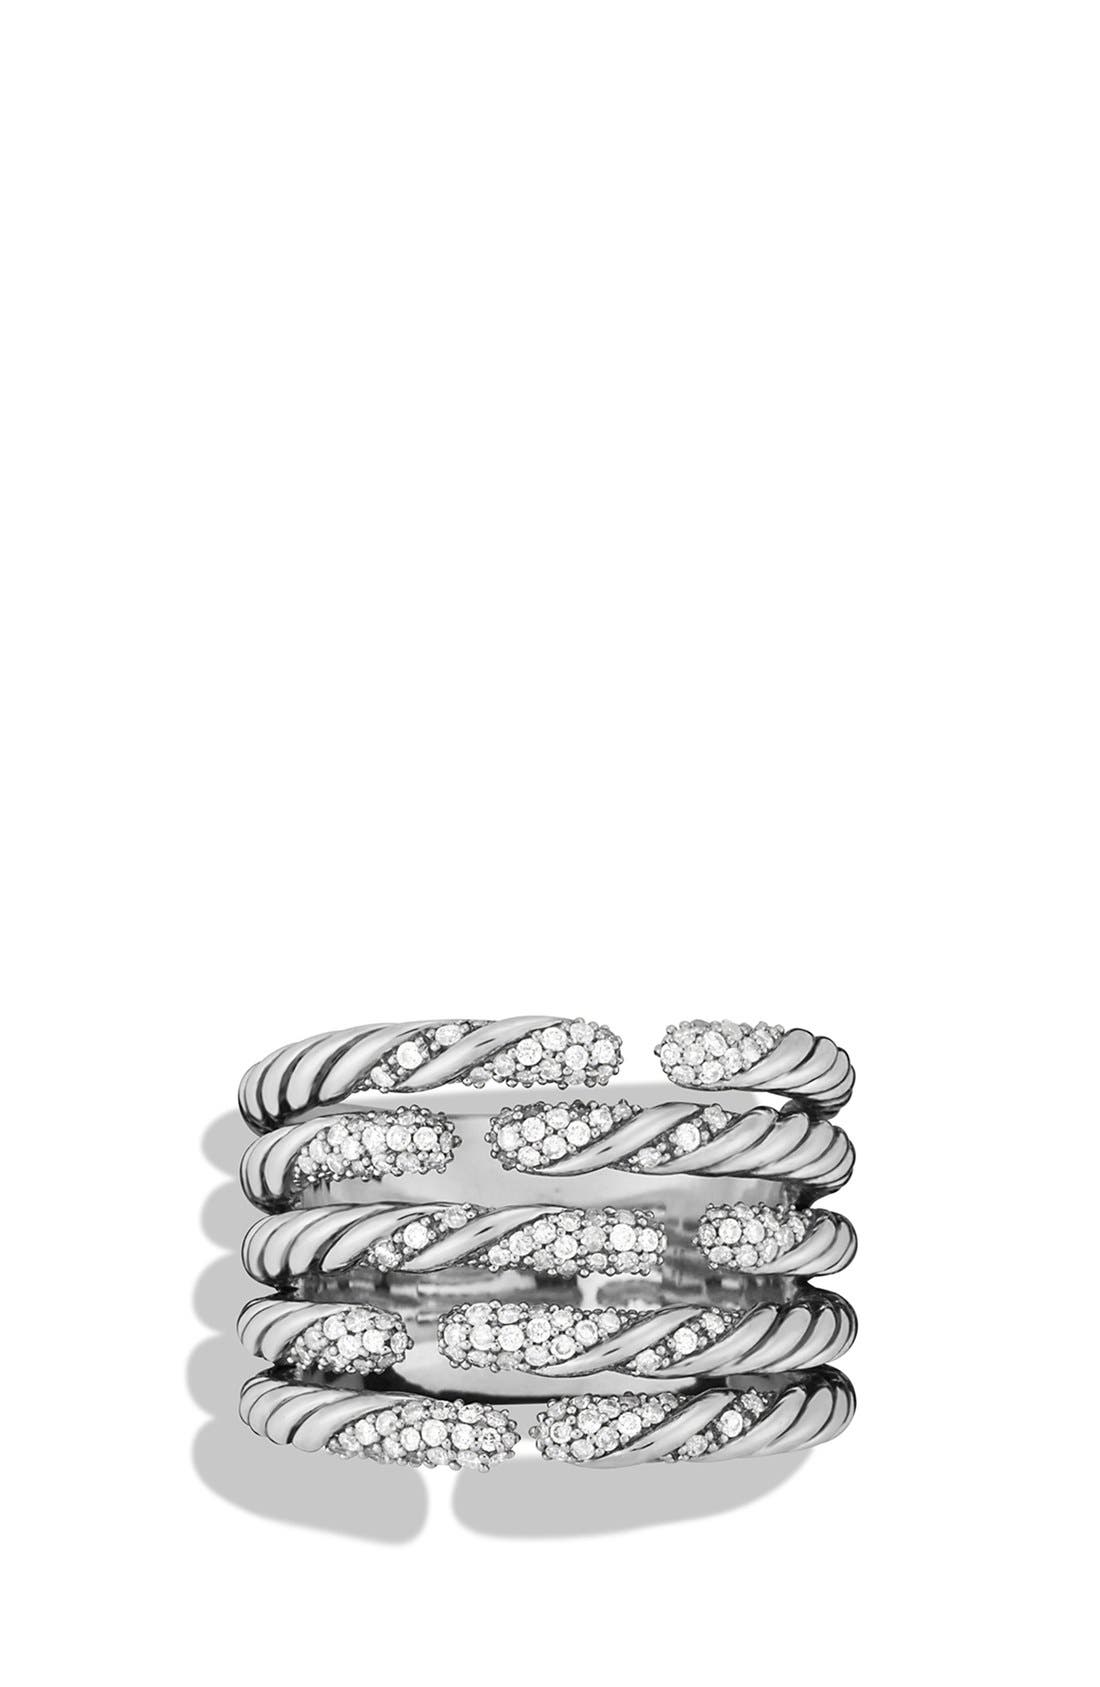 Alternate Image 3  - David Yurman 'Willow' Five-Row Ring with Diamonds